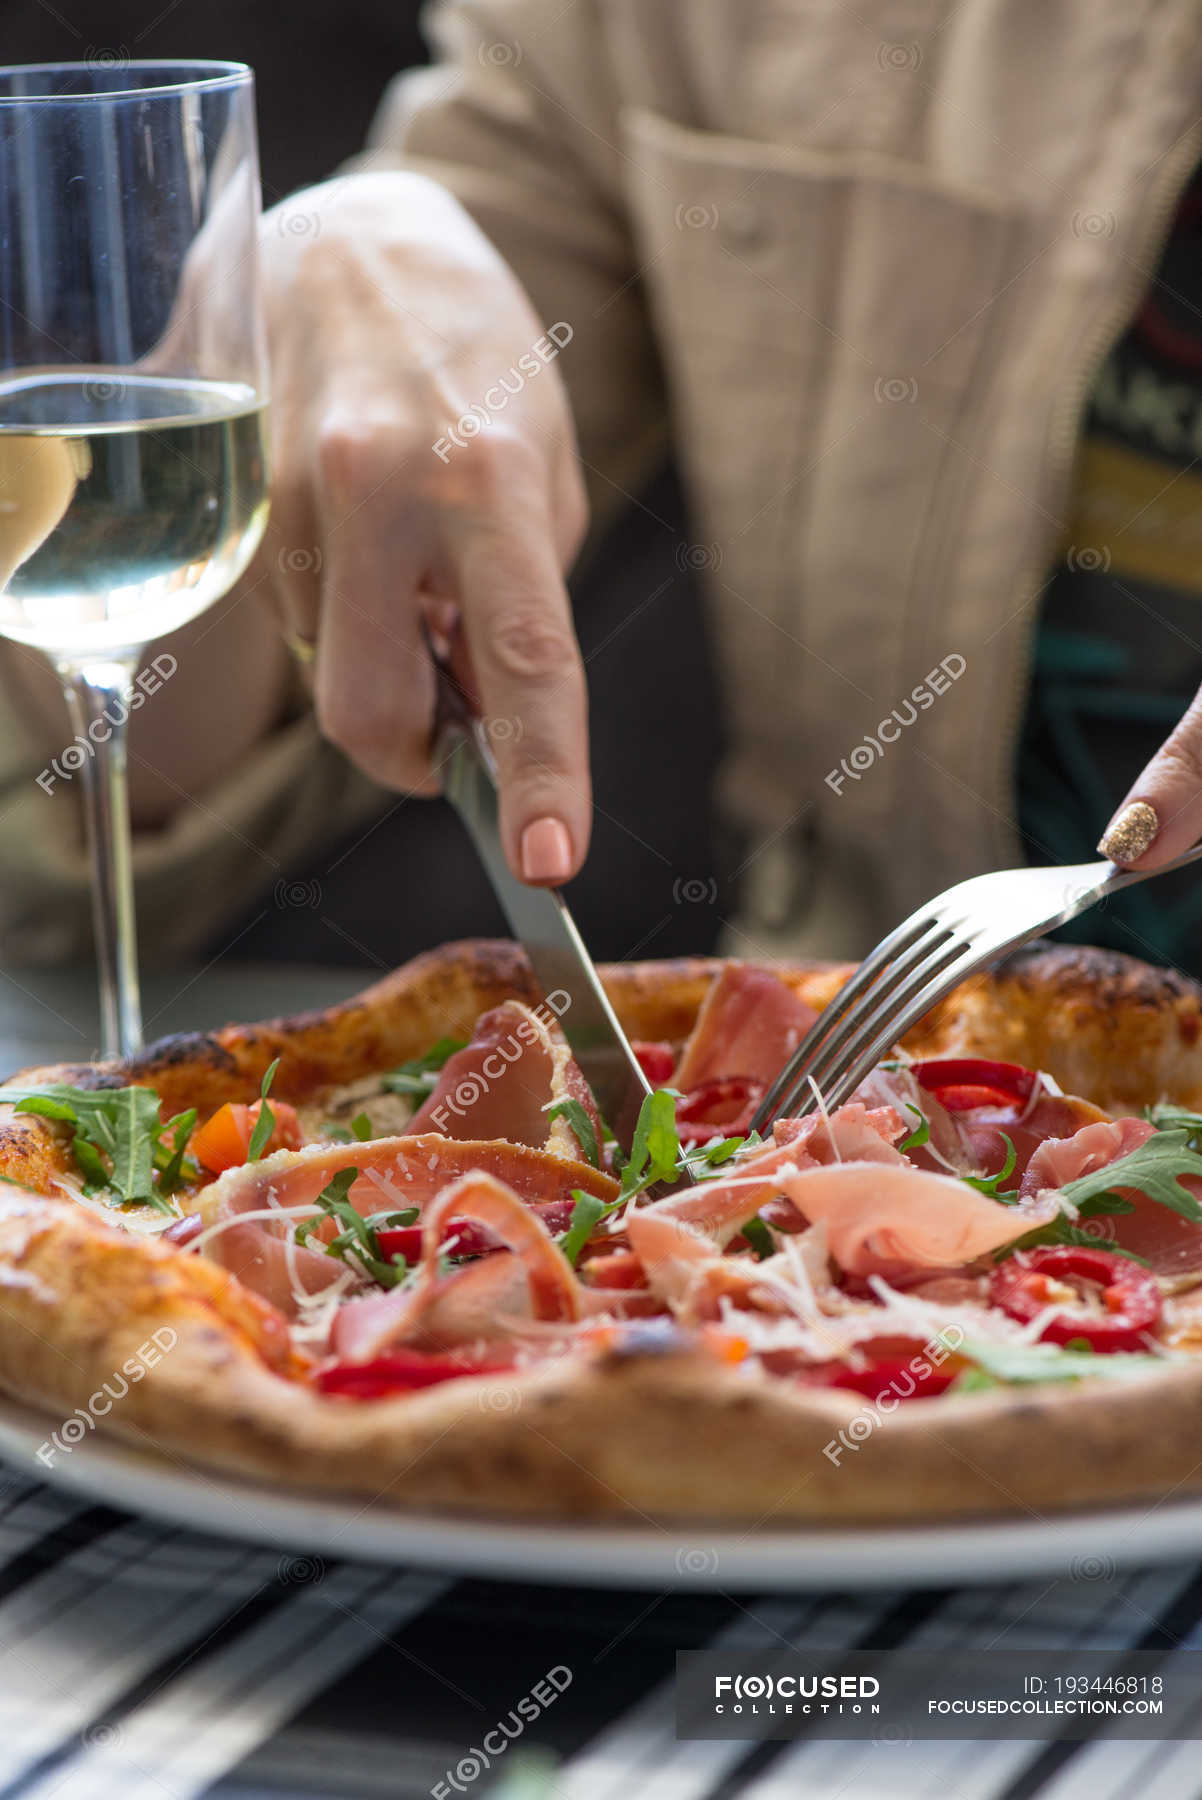 Female Hands Cutting Off A Piece Of Delicious Pizza And Glass Of